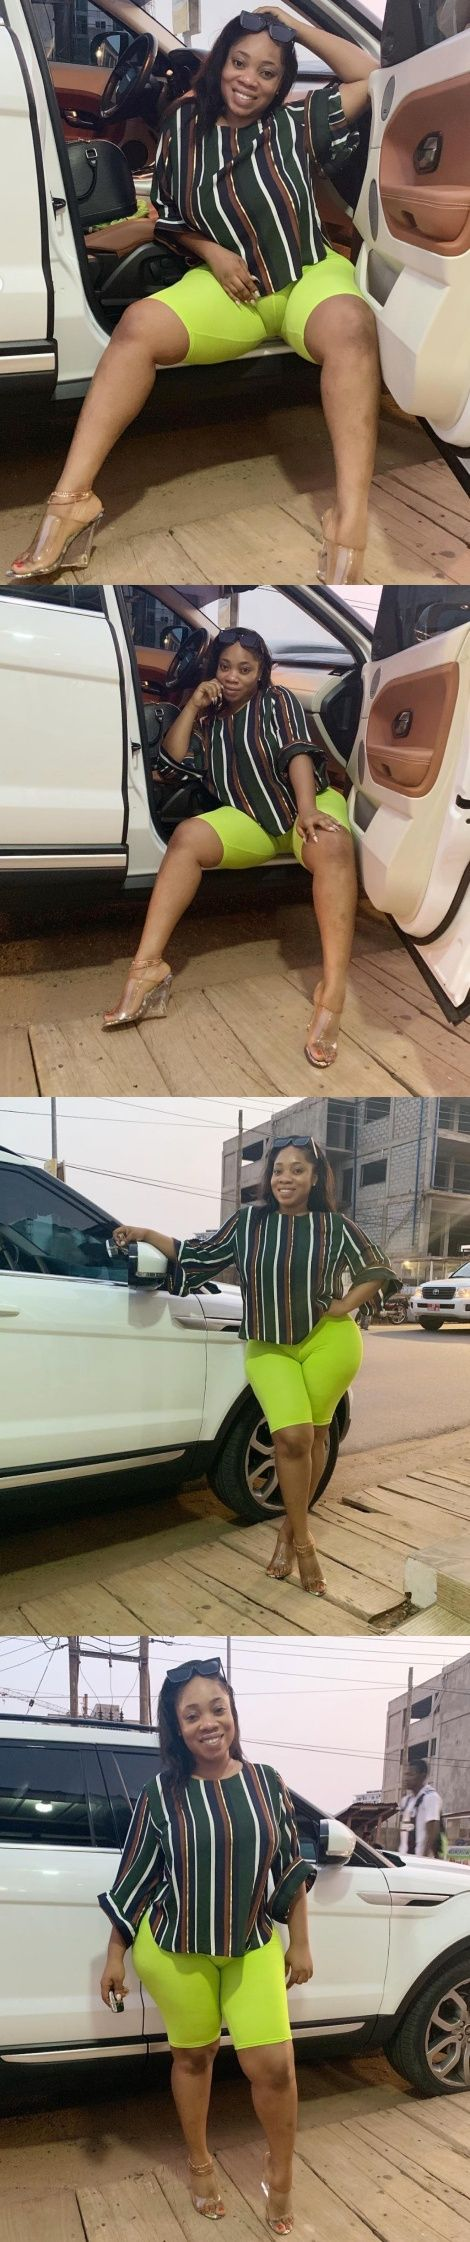 Moesha Opens Her Legs To Display Her Private Part (Photos)